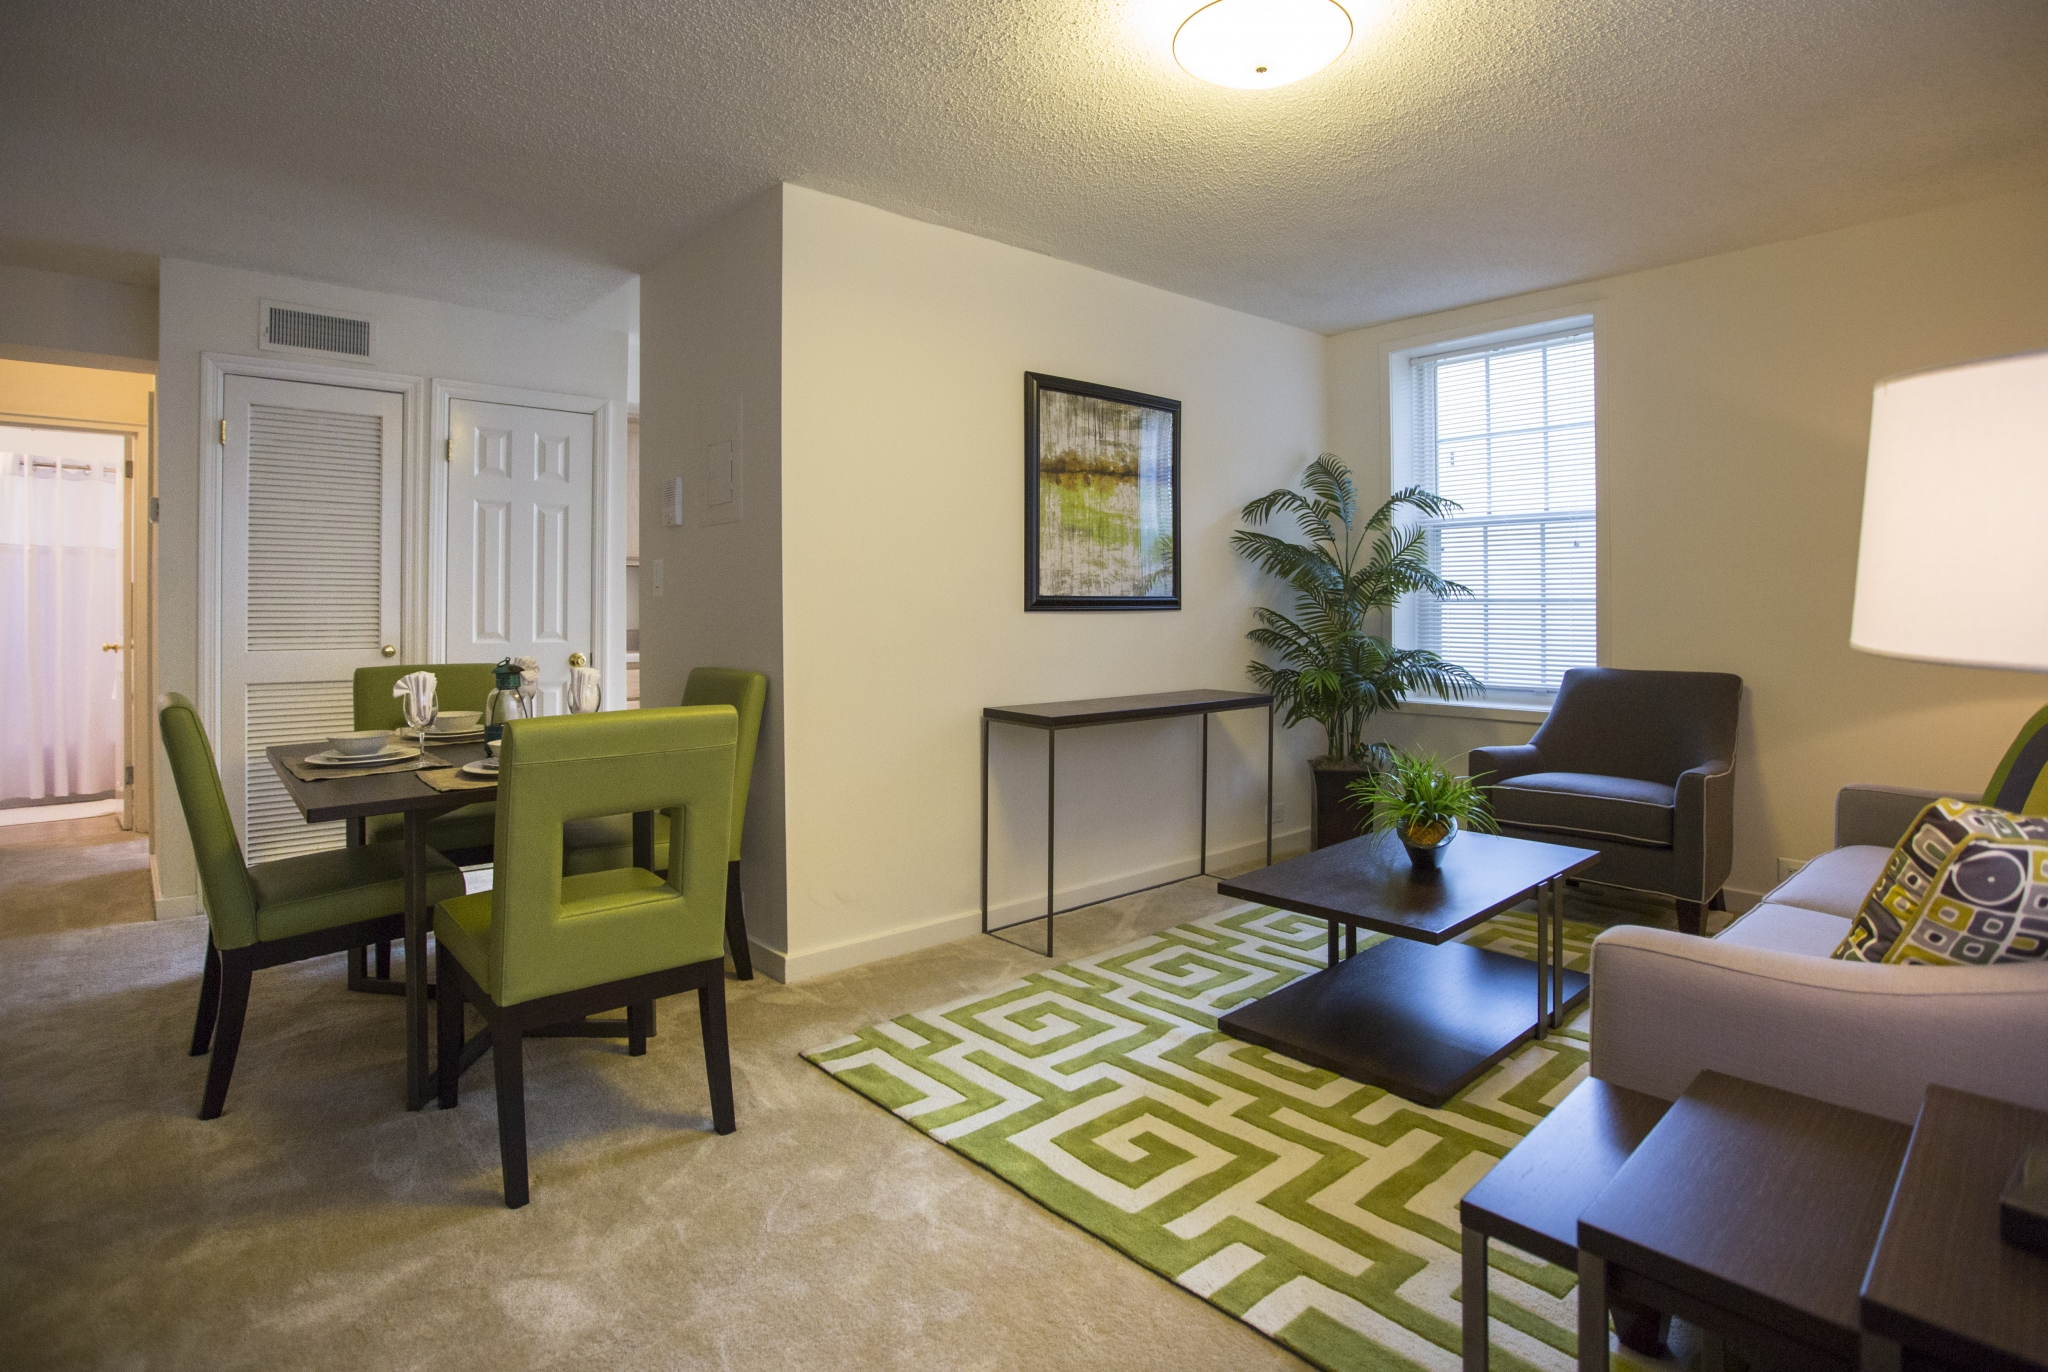 With Several Floorplans Available, We Have The Right Apartment To Fit Your  Lifestyle. Browse Through Our Vacancies To Find One For You.